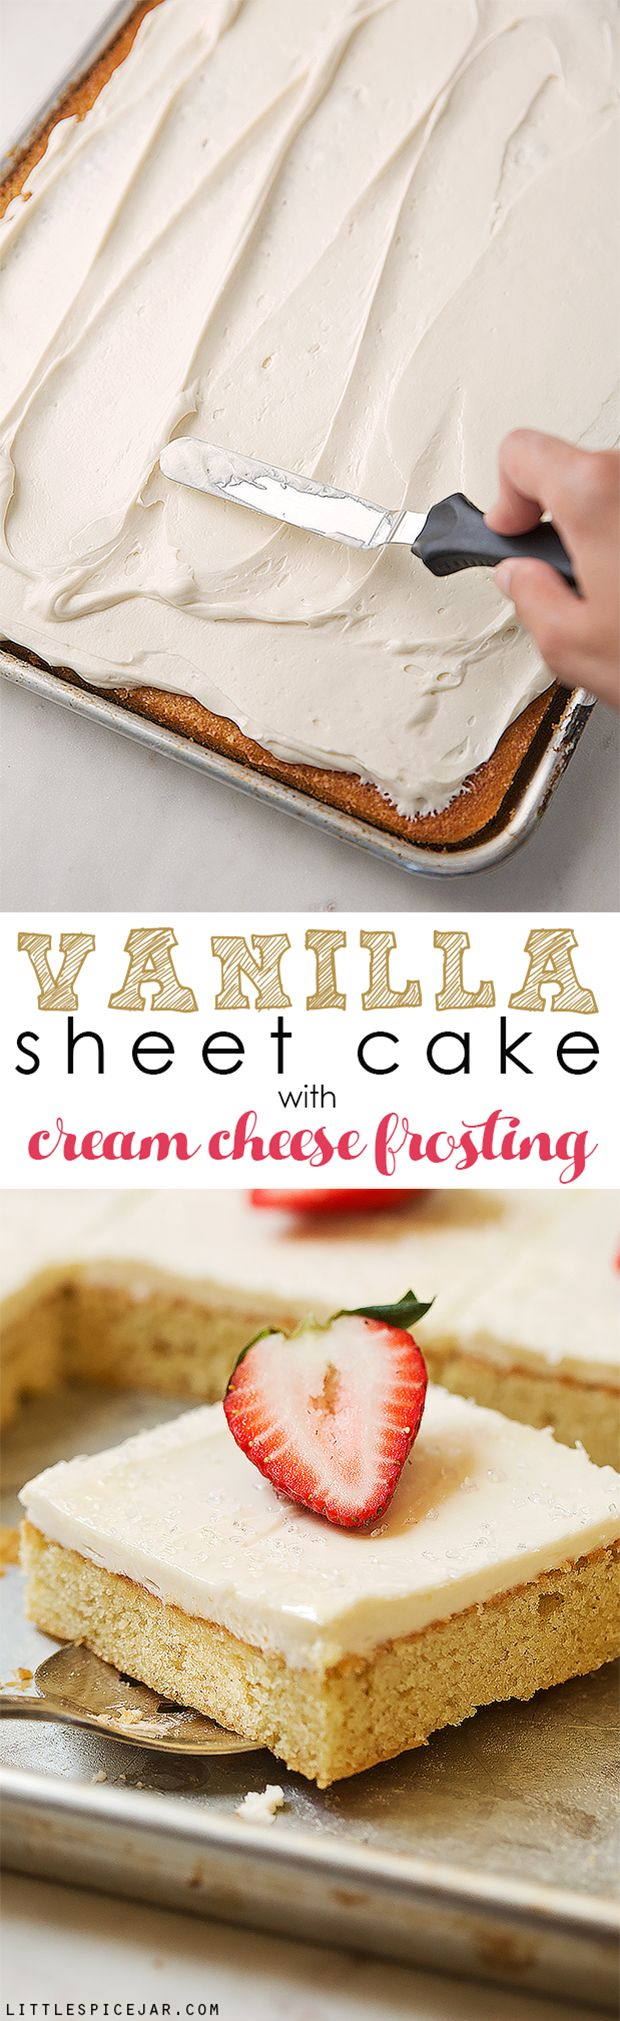 Texas-sized vanilla sheet cake with cream cheese frosting - a simple vanilla sheet cake with a sweet and tangy frosting! So good and feeds a crowd! #creamcheesefrosting #vanillasheetcake #texassheetcake #sheetcake | Littlespicejar.com